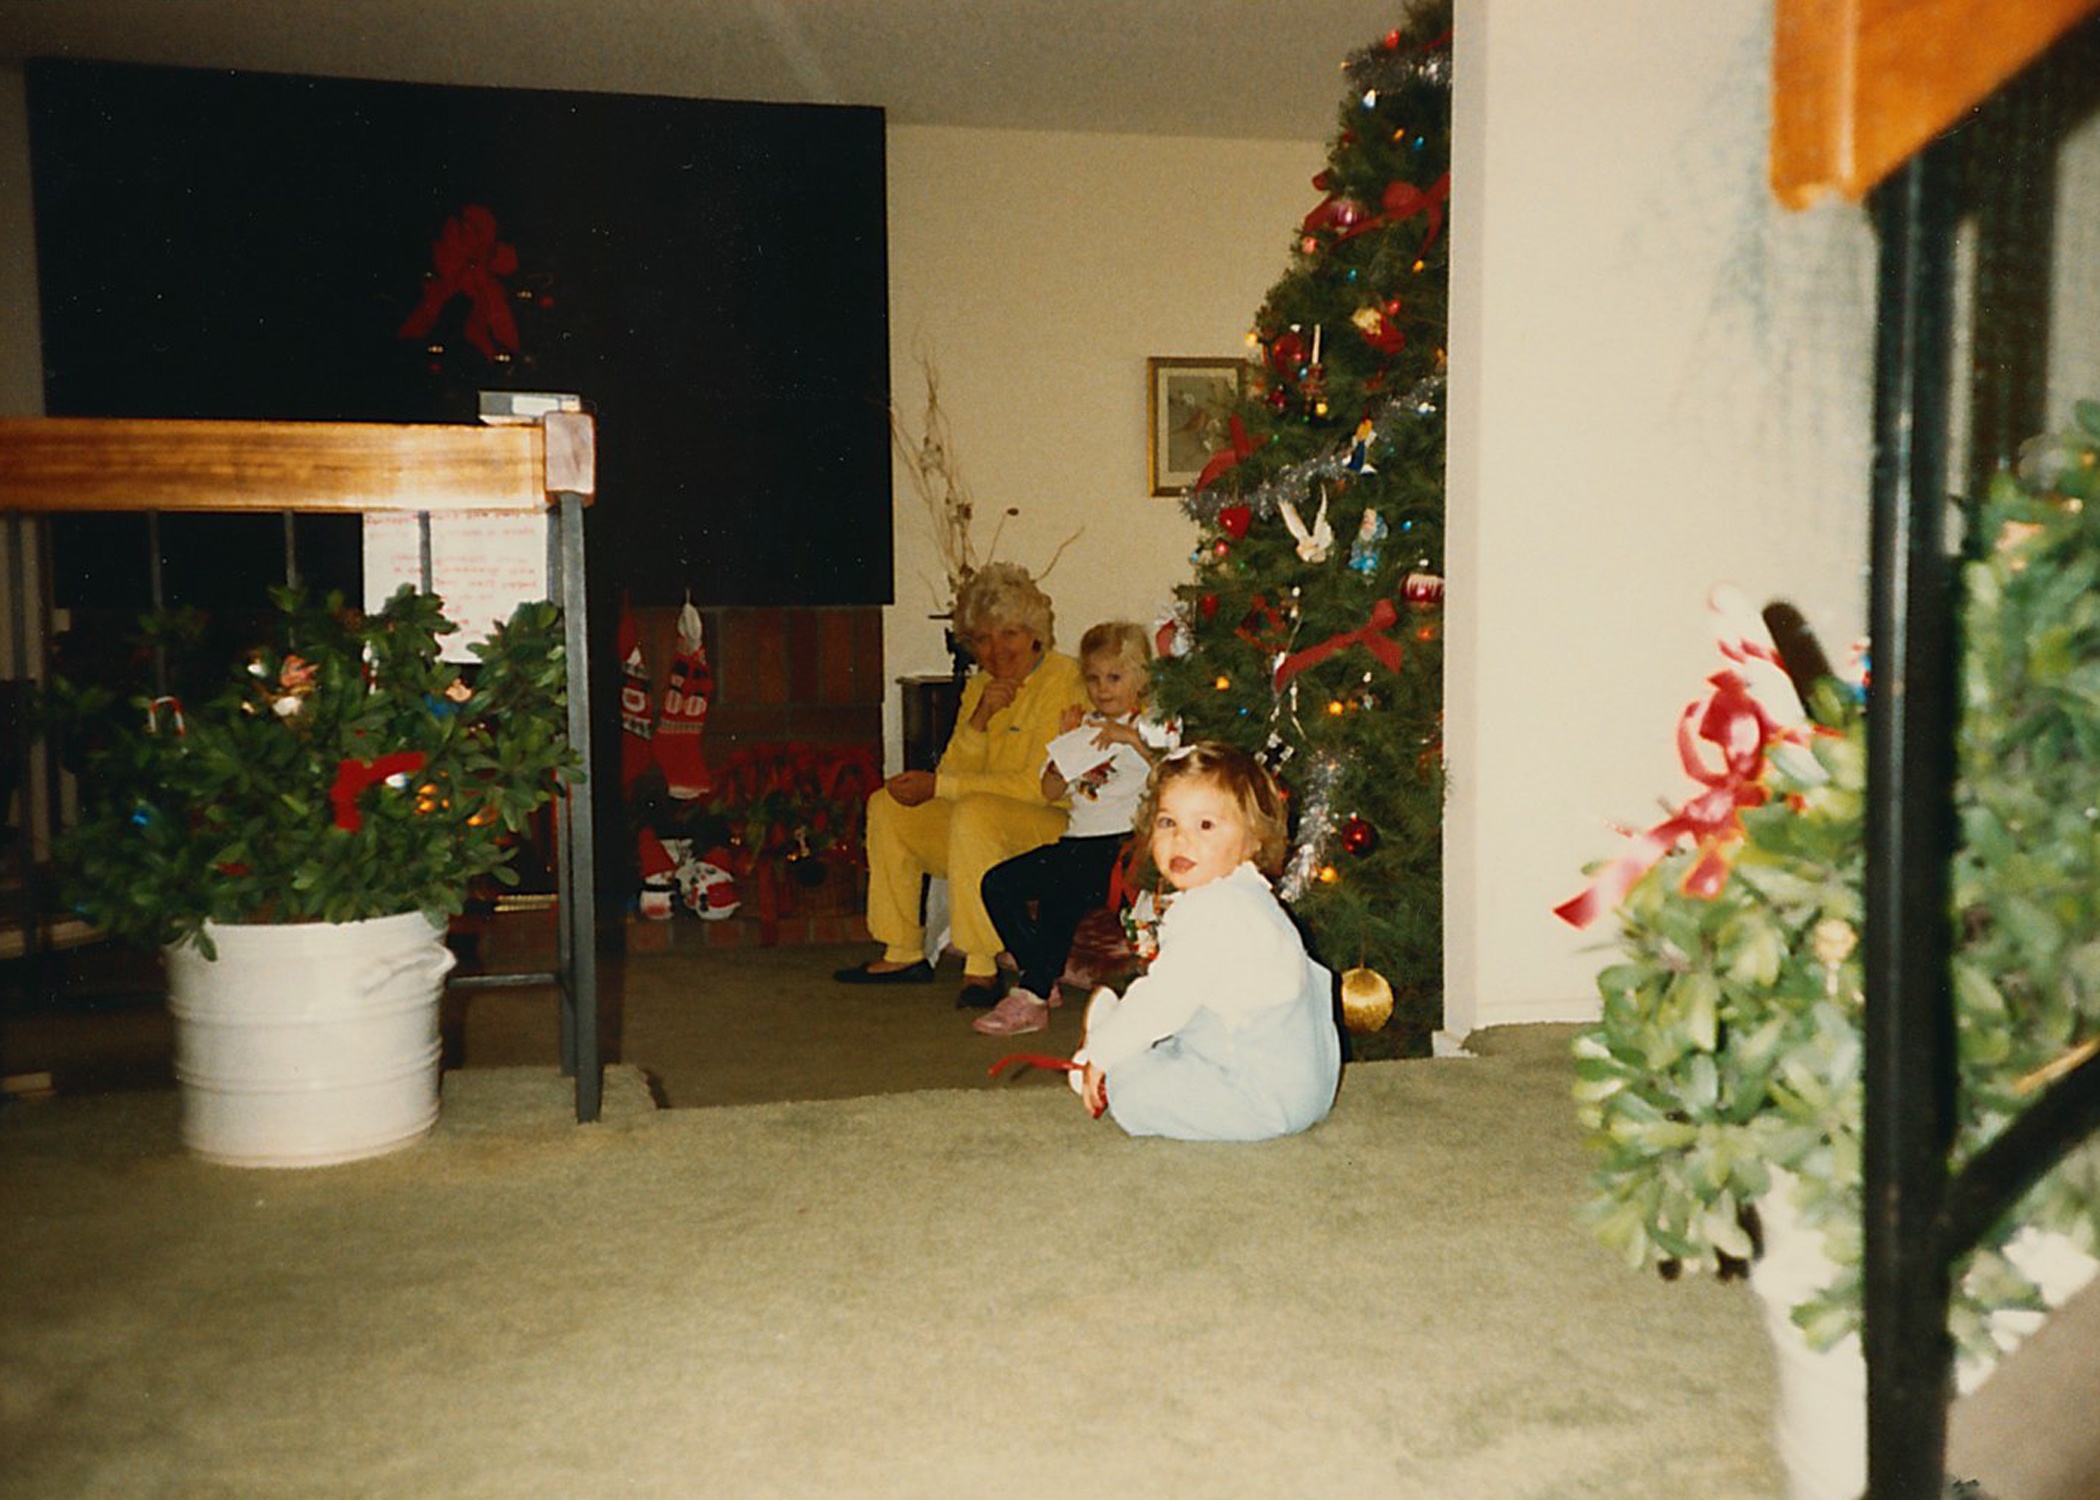 On Christmas morning in California. It was one of the best Christmases ever.